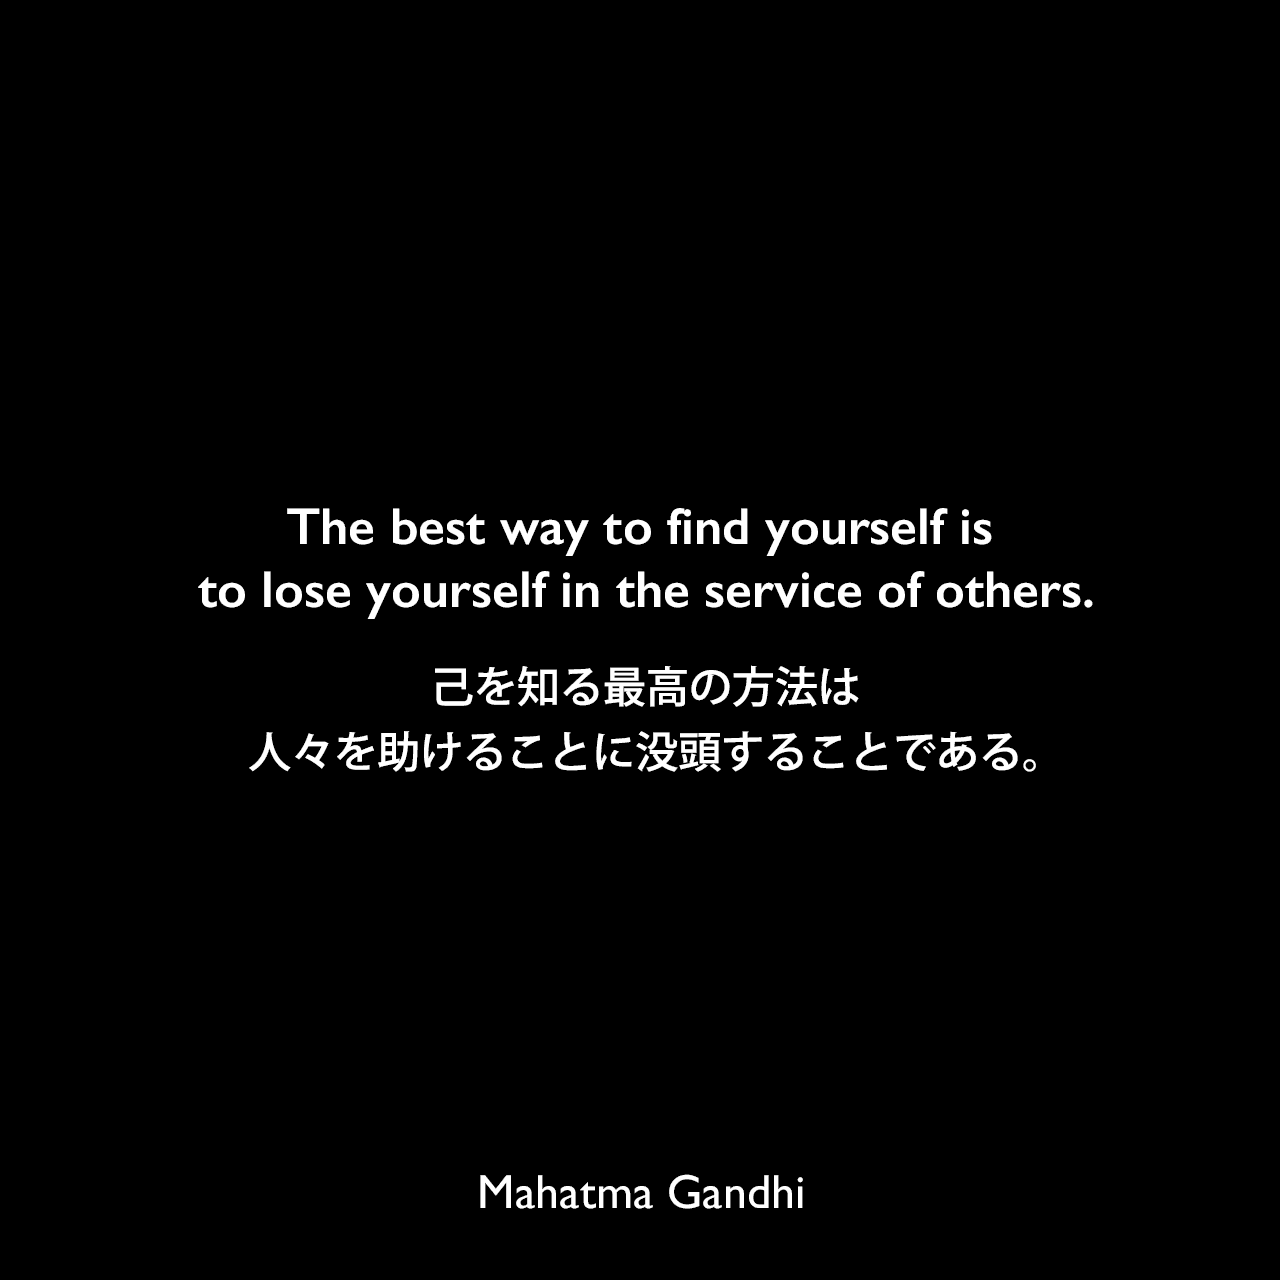 The best way to find yourself is to lose yourself in the service of others.己を知る最高の方法は、人々を助けることに没頭することである。Mahatma Gandhi